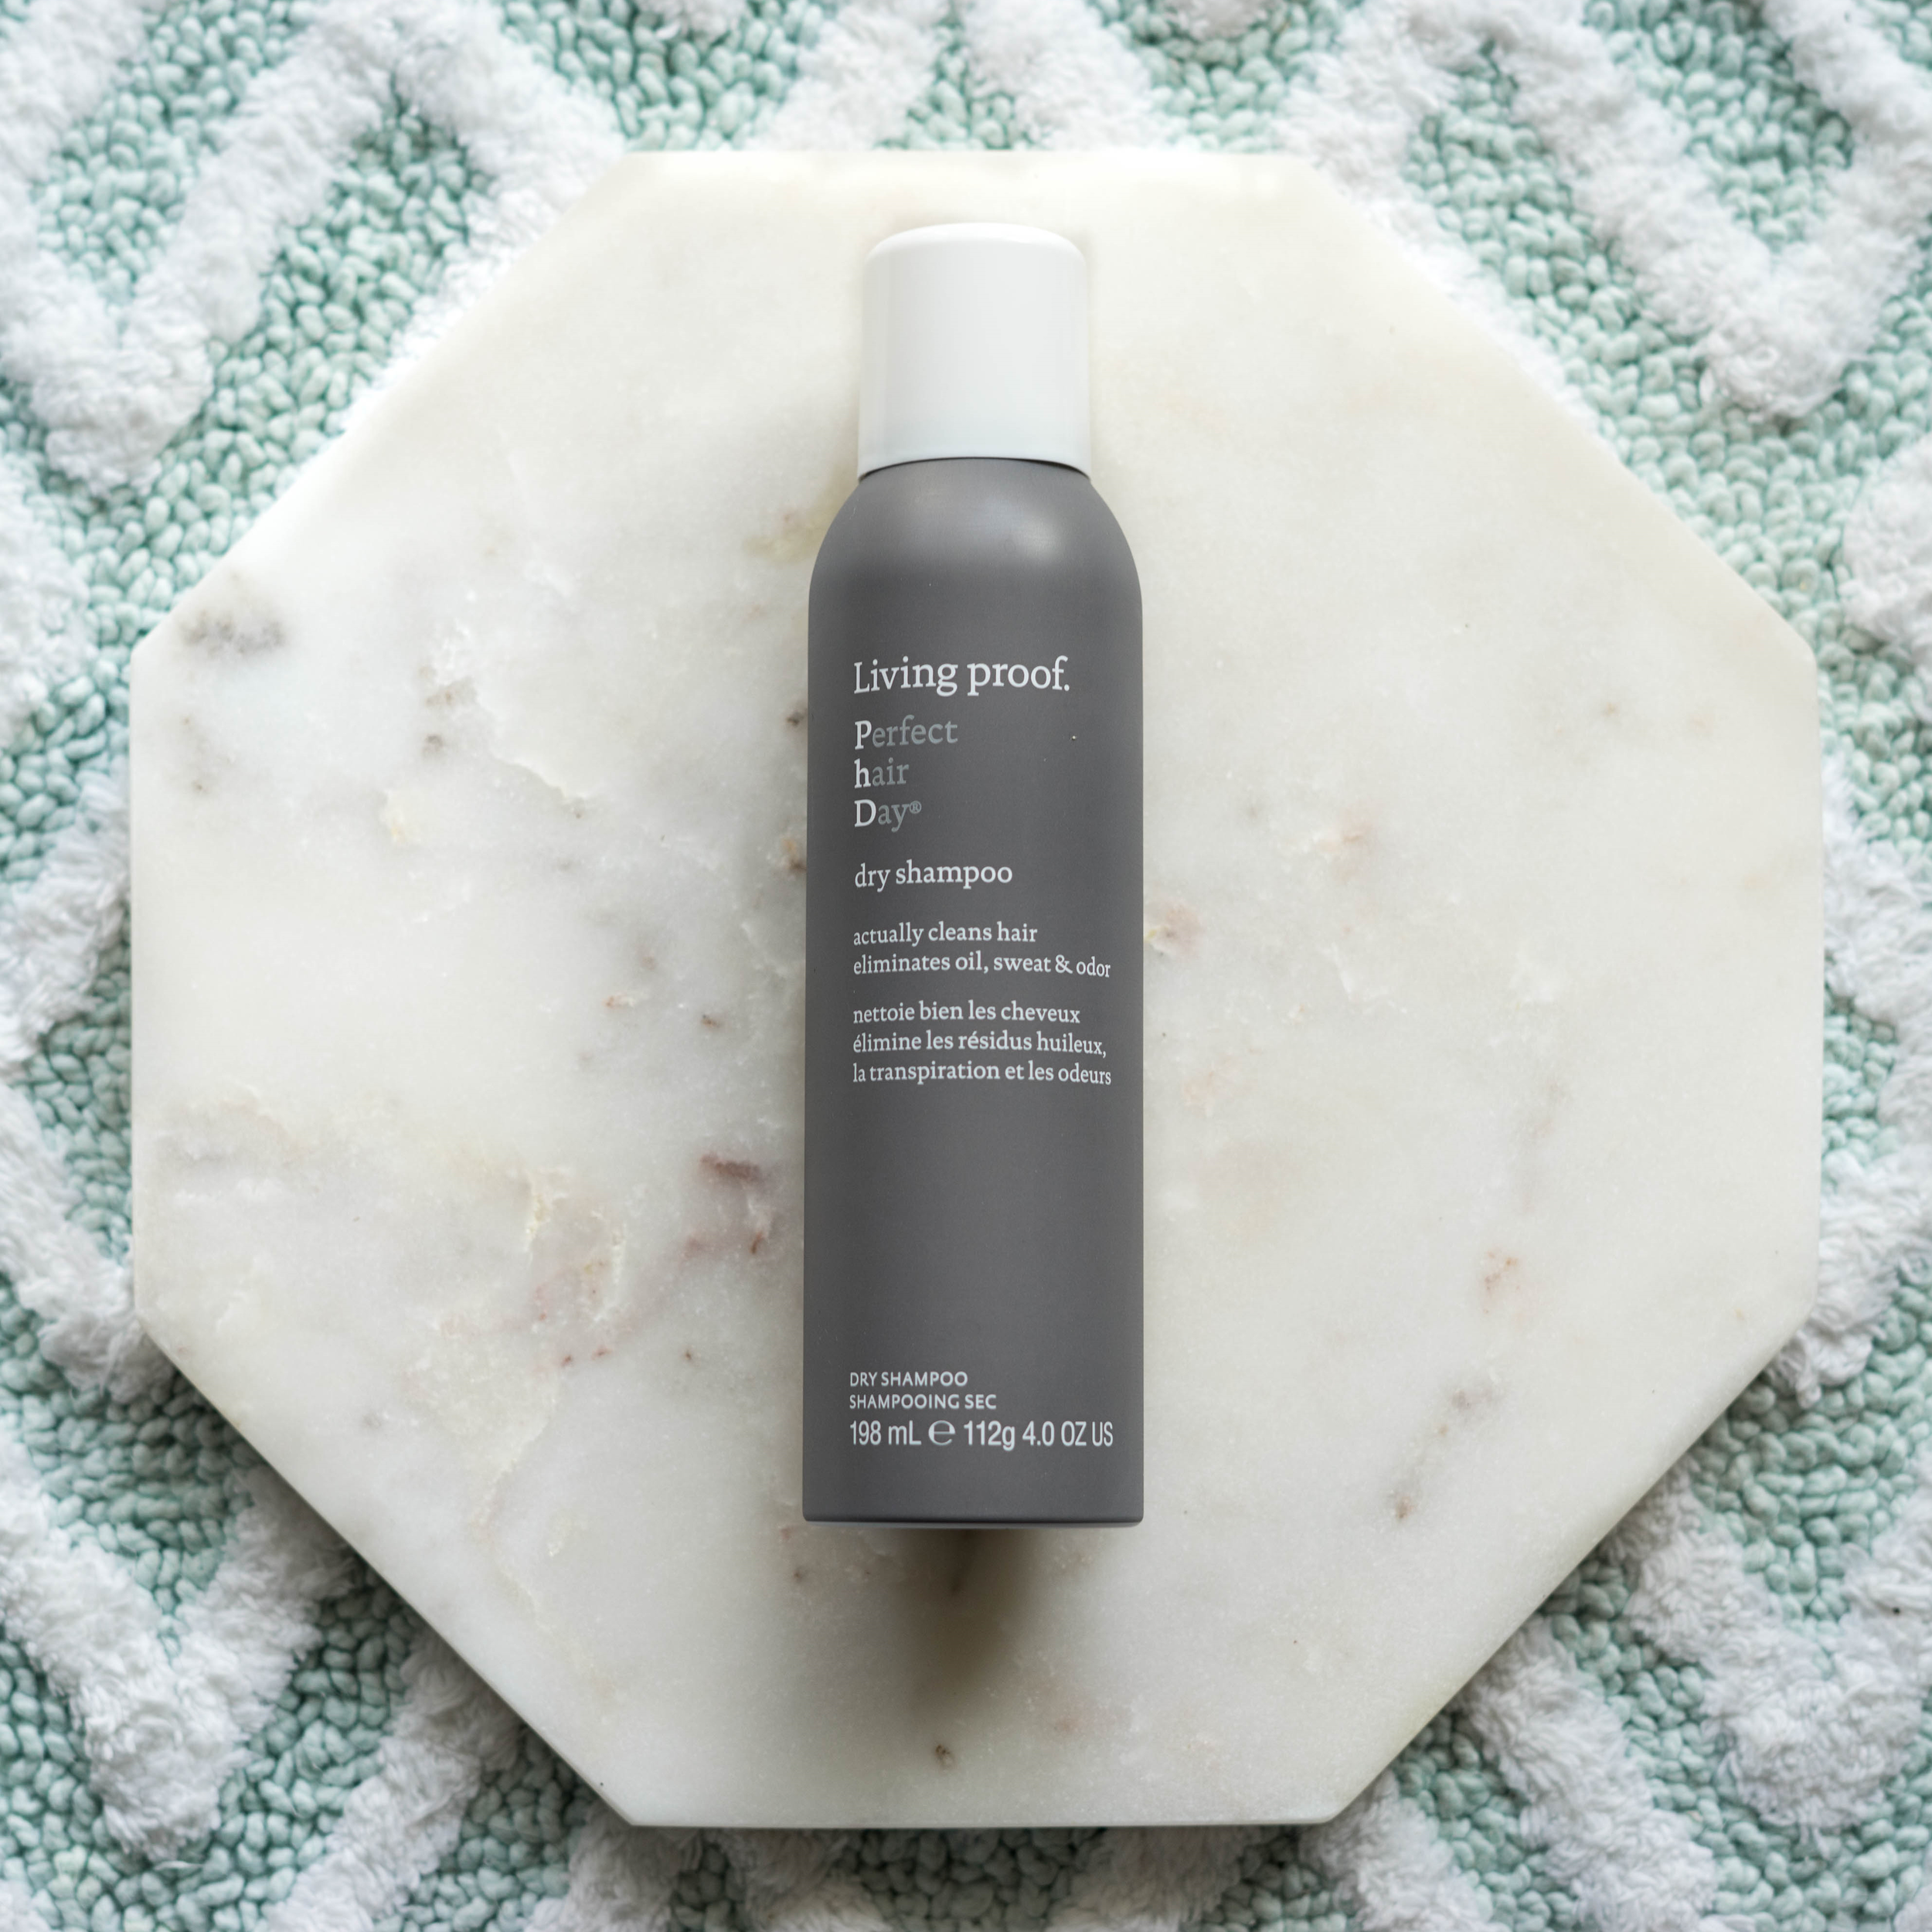 Living Proof Phd - This dry shampoo is special. Living Proof claims that their formulation actually cleans hair and reduces odor with their